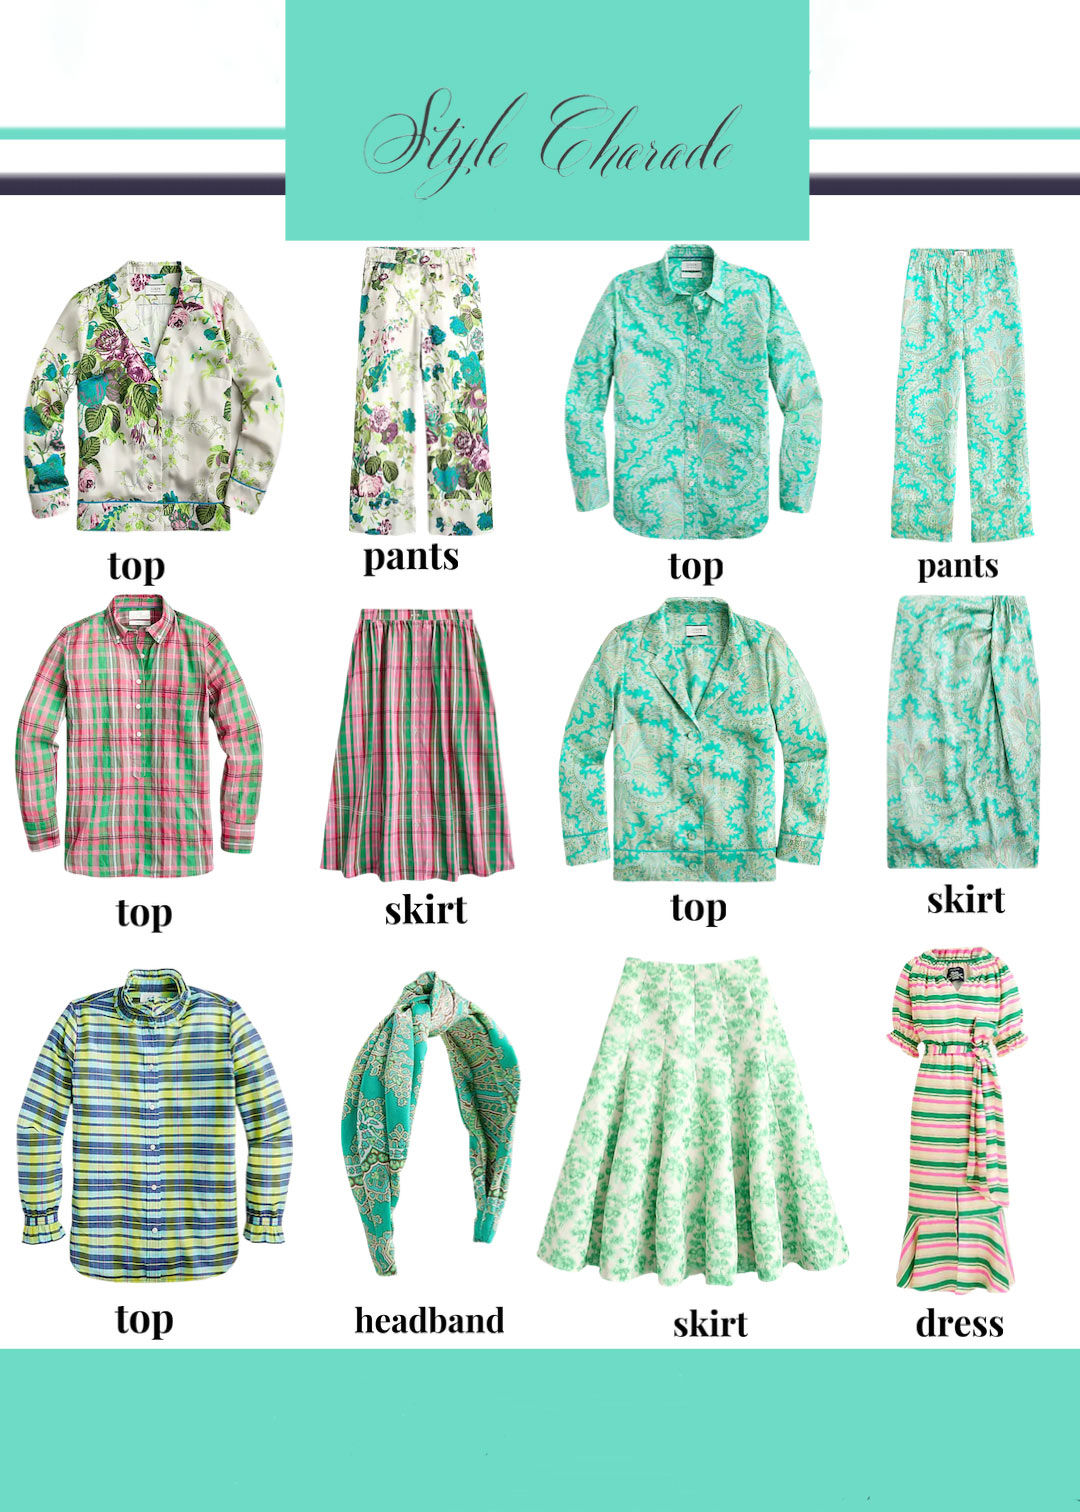 J Crew Spring 2021 Collection